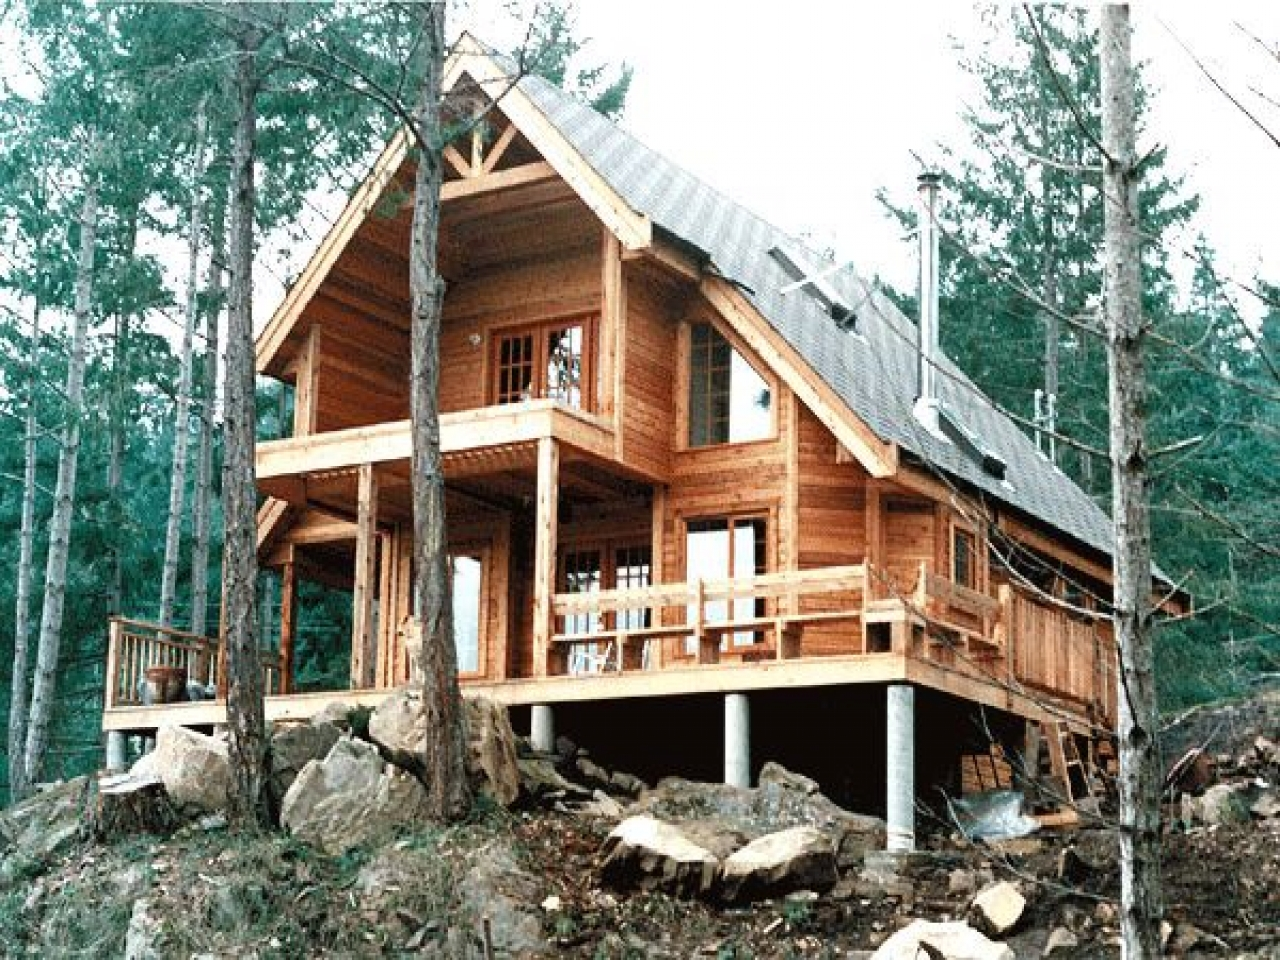 A Frame Cabin Plans 2 Bedroom A Frame Cabin Plans Free Do: Appalachian Mountain House Plans Contemporary Cabin House